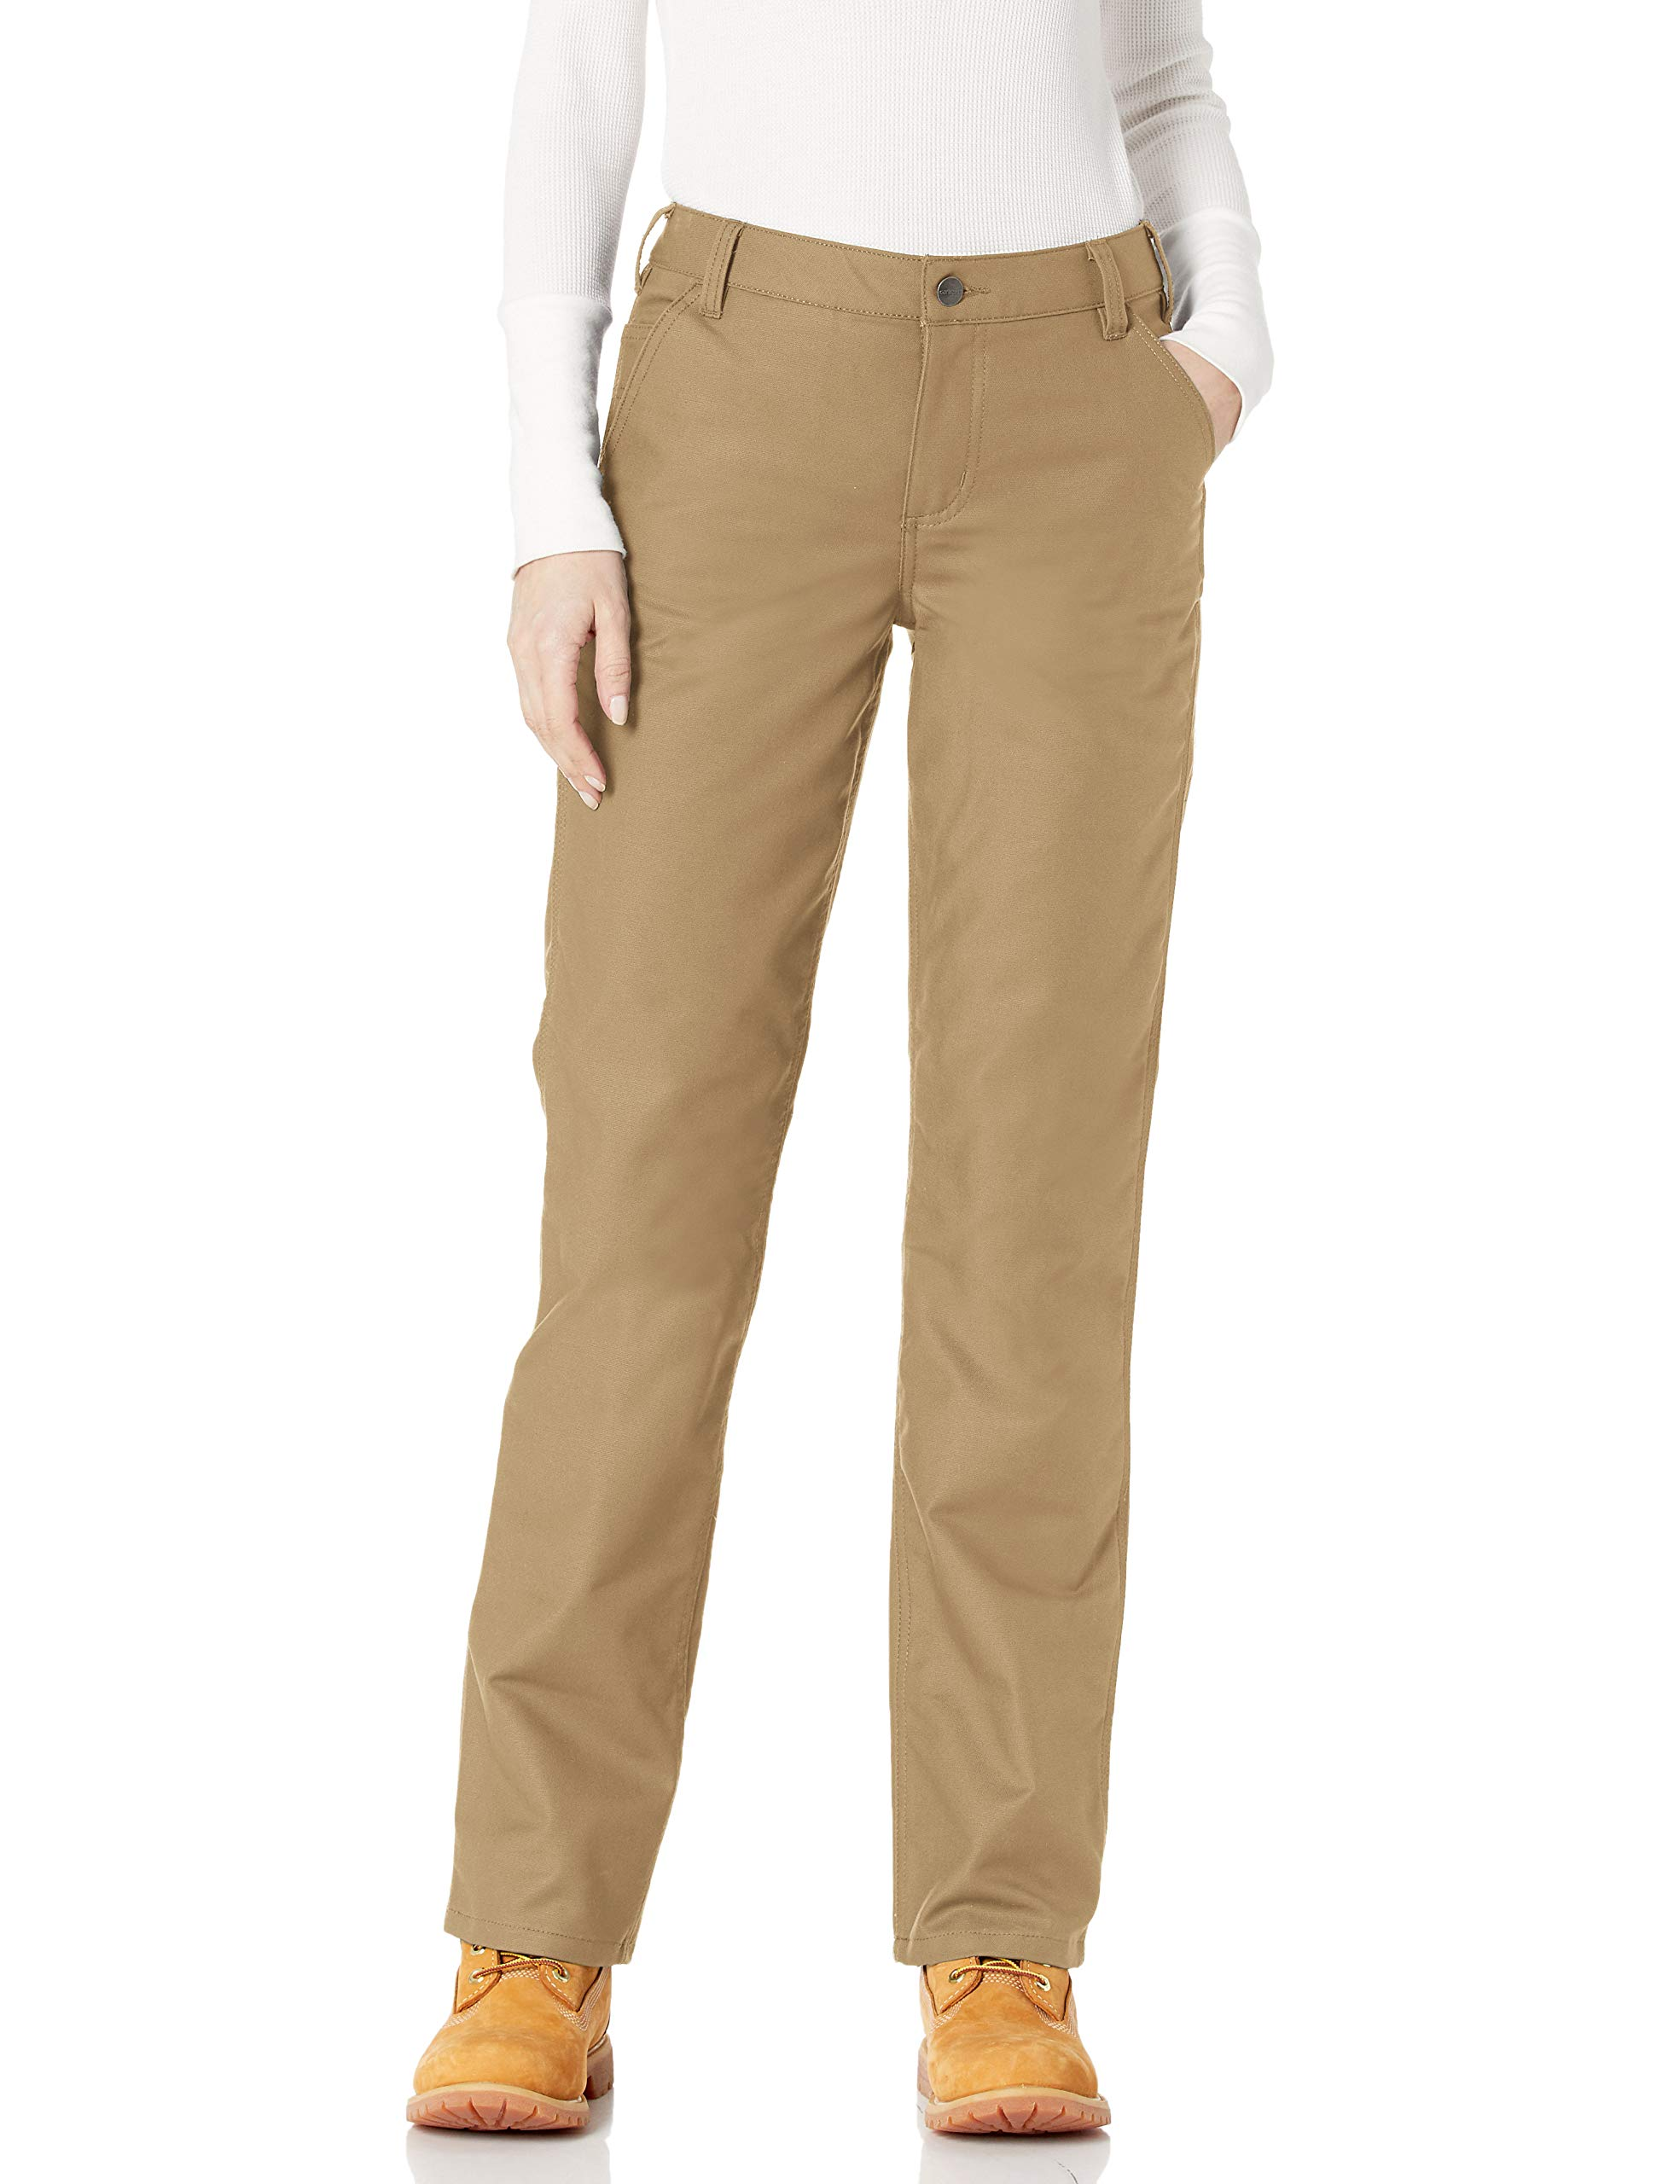 Carhartt Women's Original Fit Rugged Professional Pant